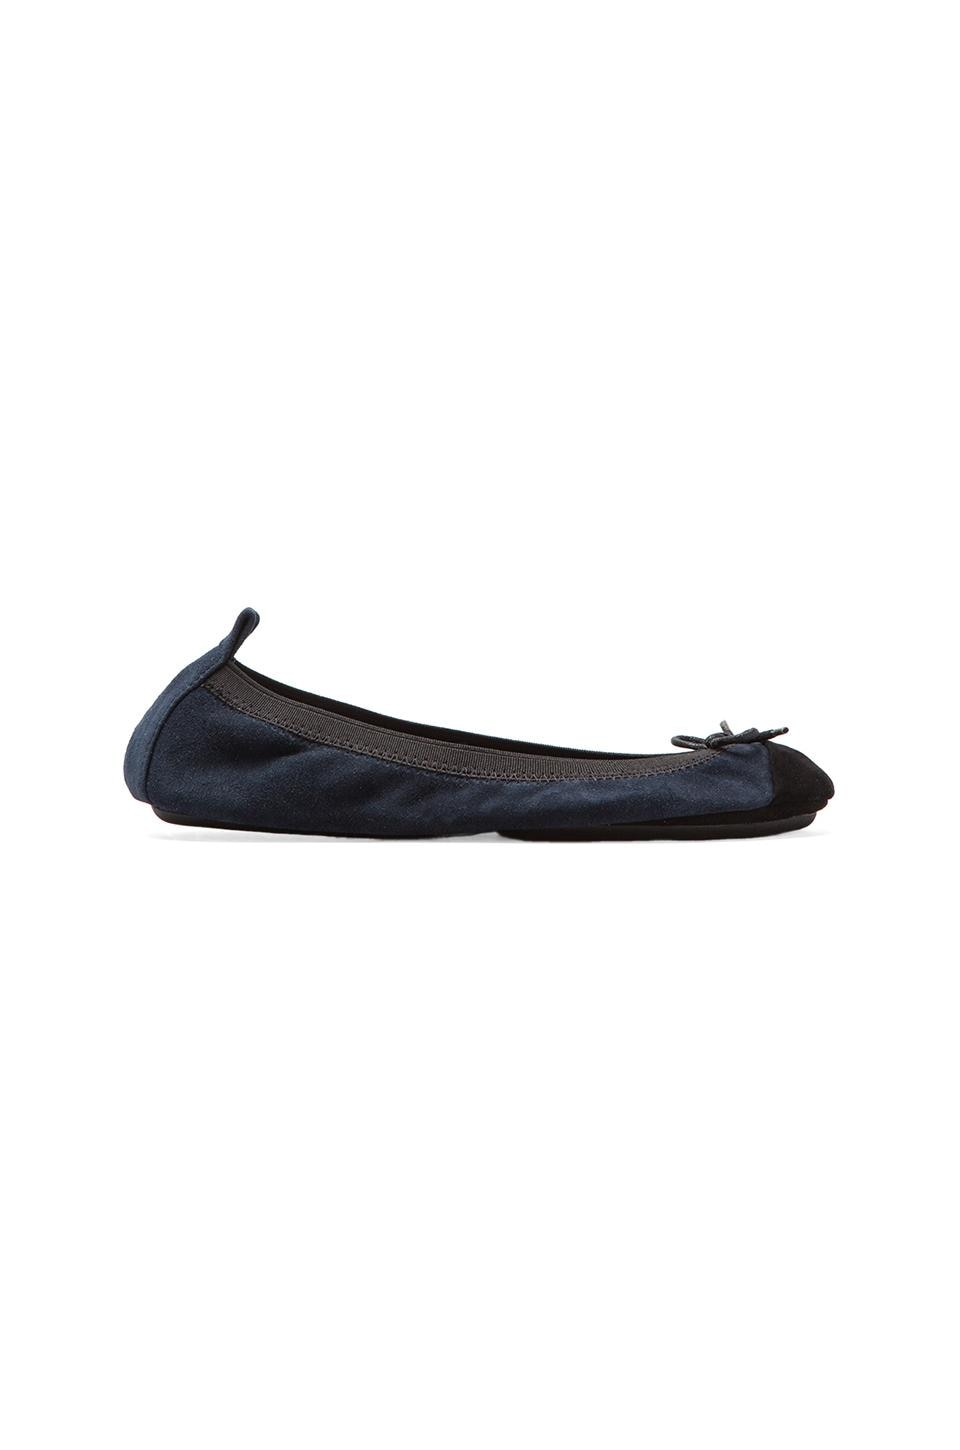 Yosi Samra Two Tone Cap Toe Ballet Flat in Midnight/Black